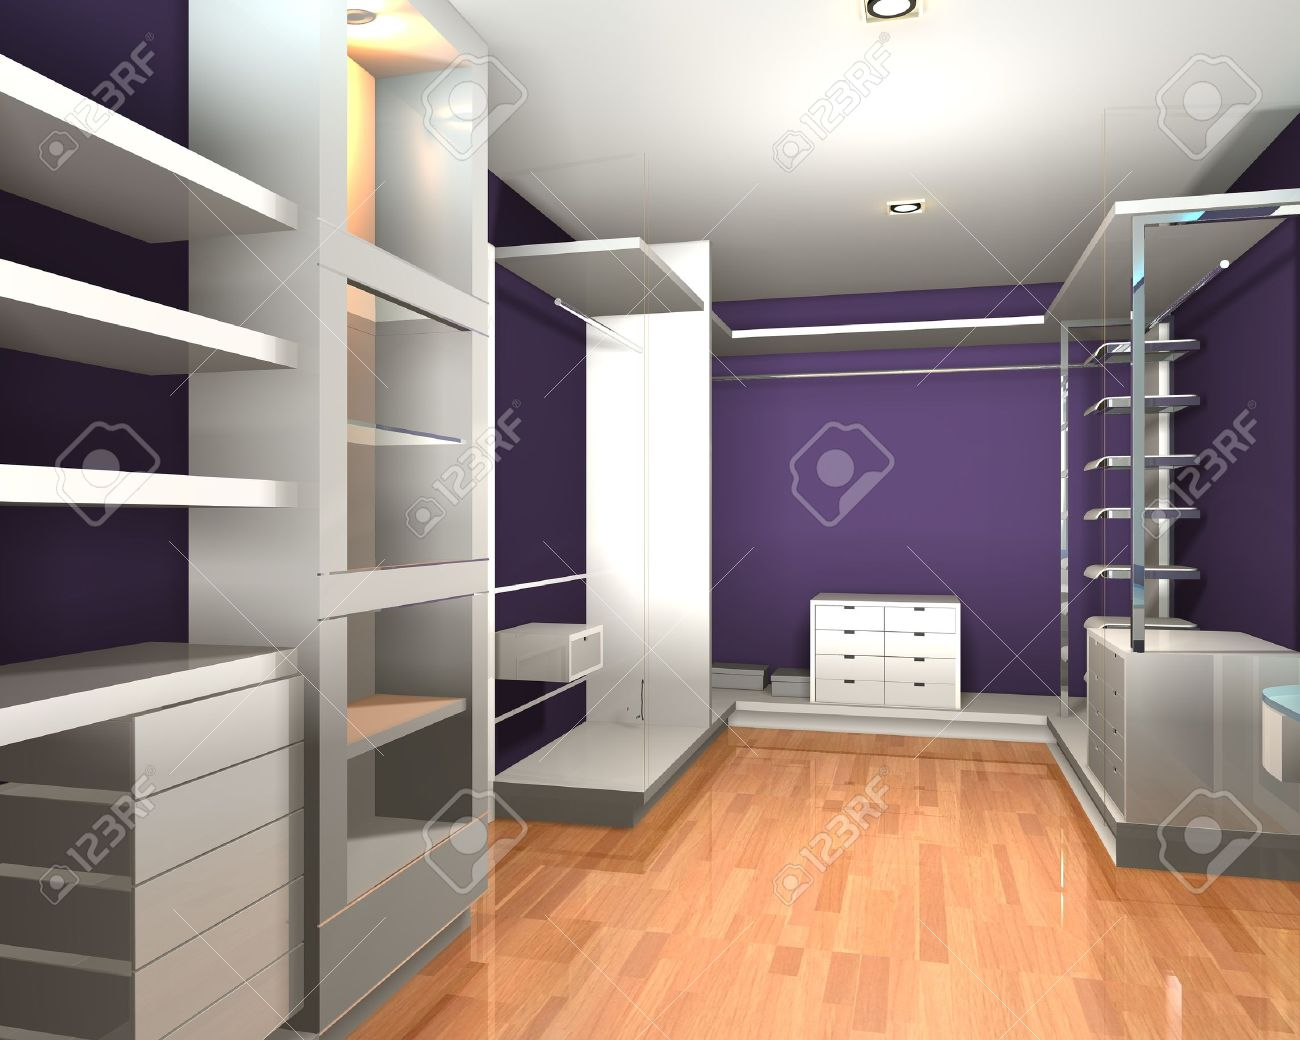 Empty interior  modern room for walk in closet with shelves and purple wall. Stock Photo - 12203439